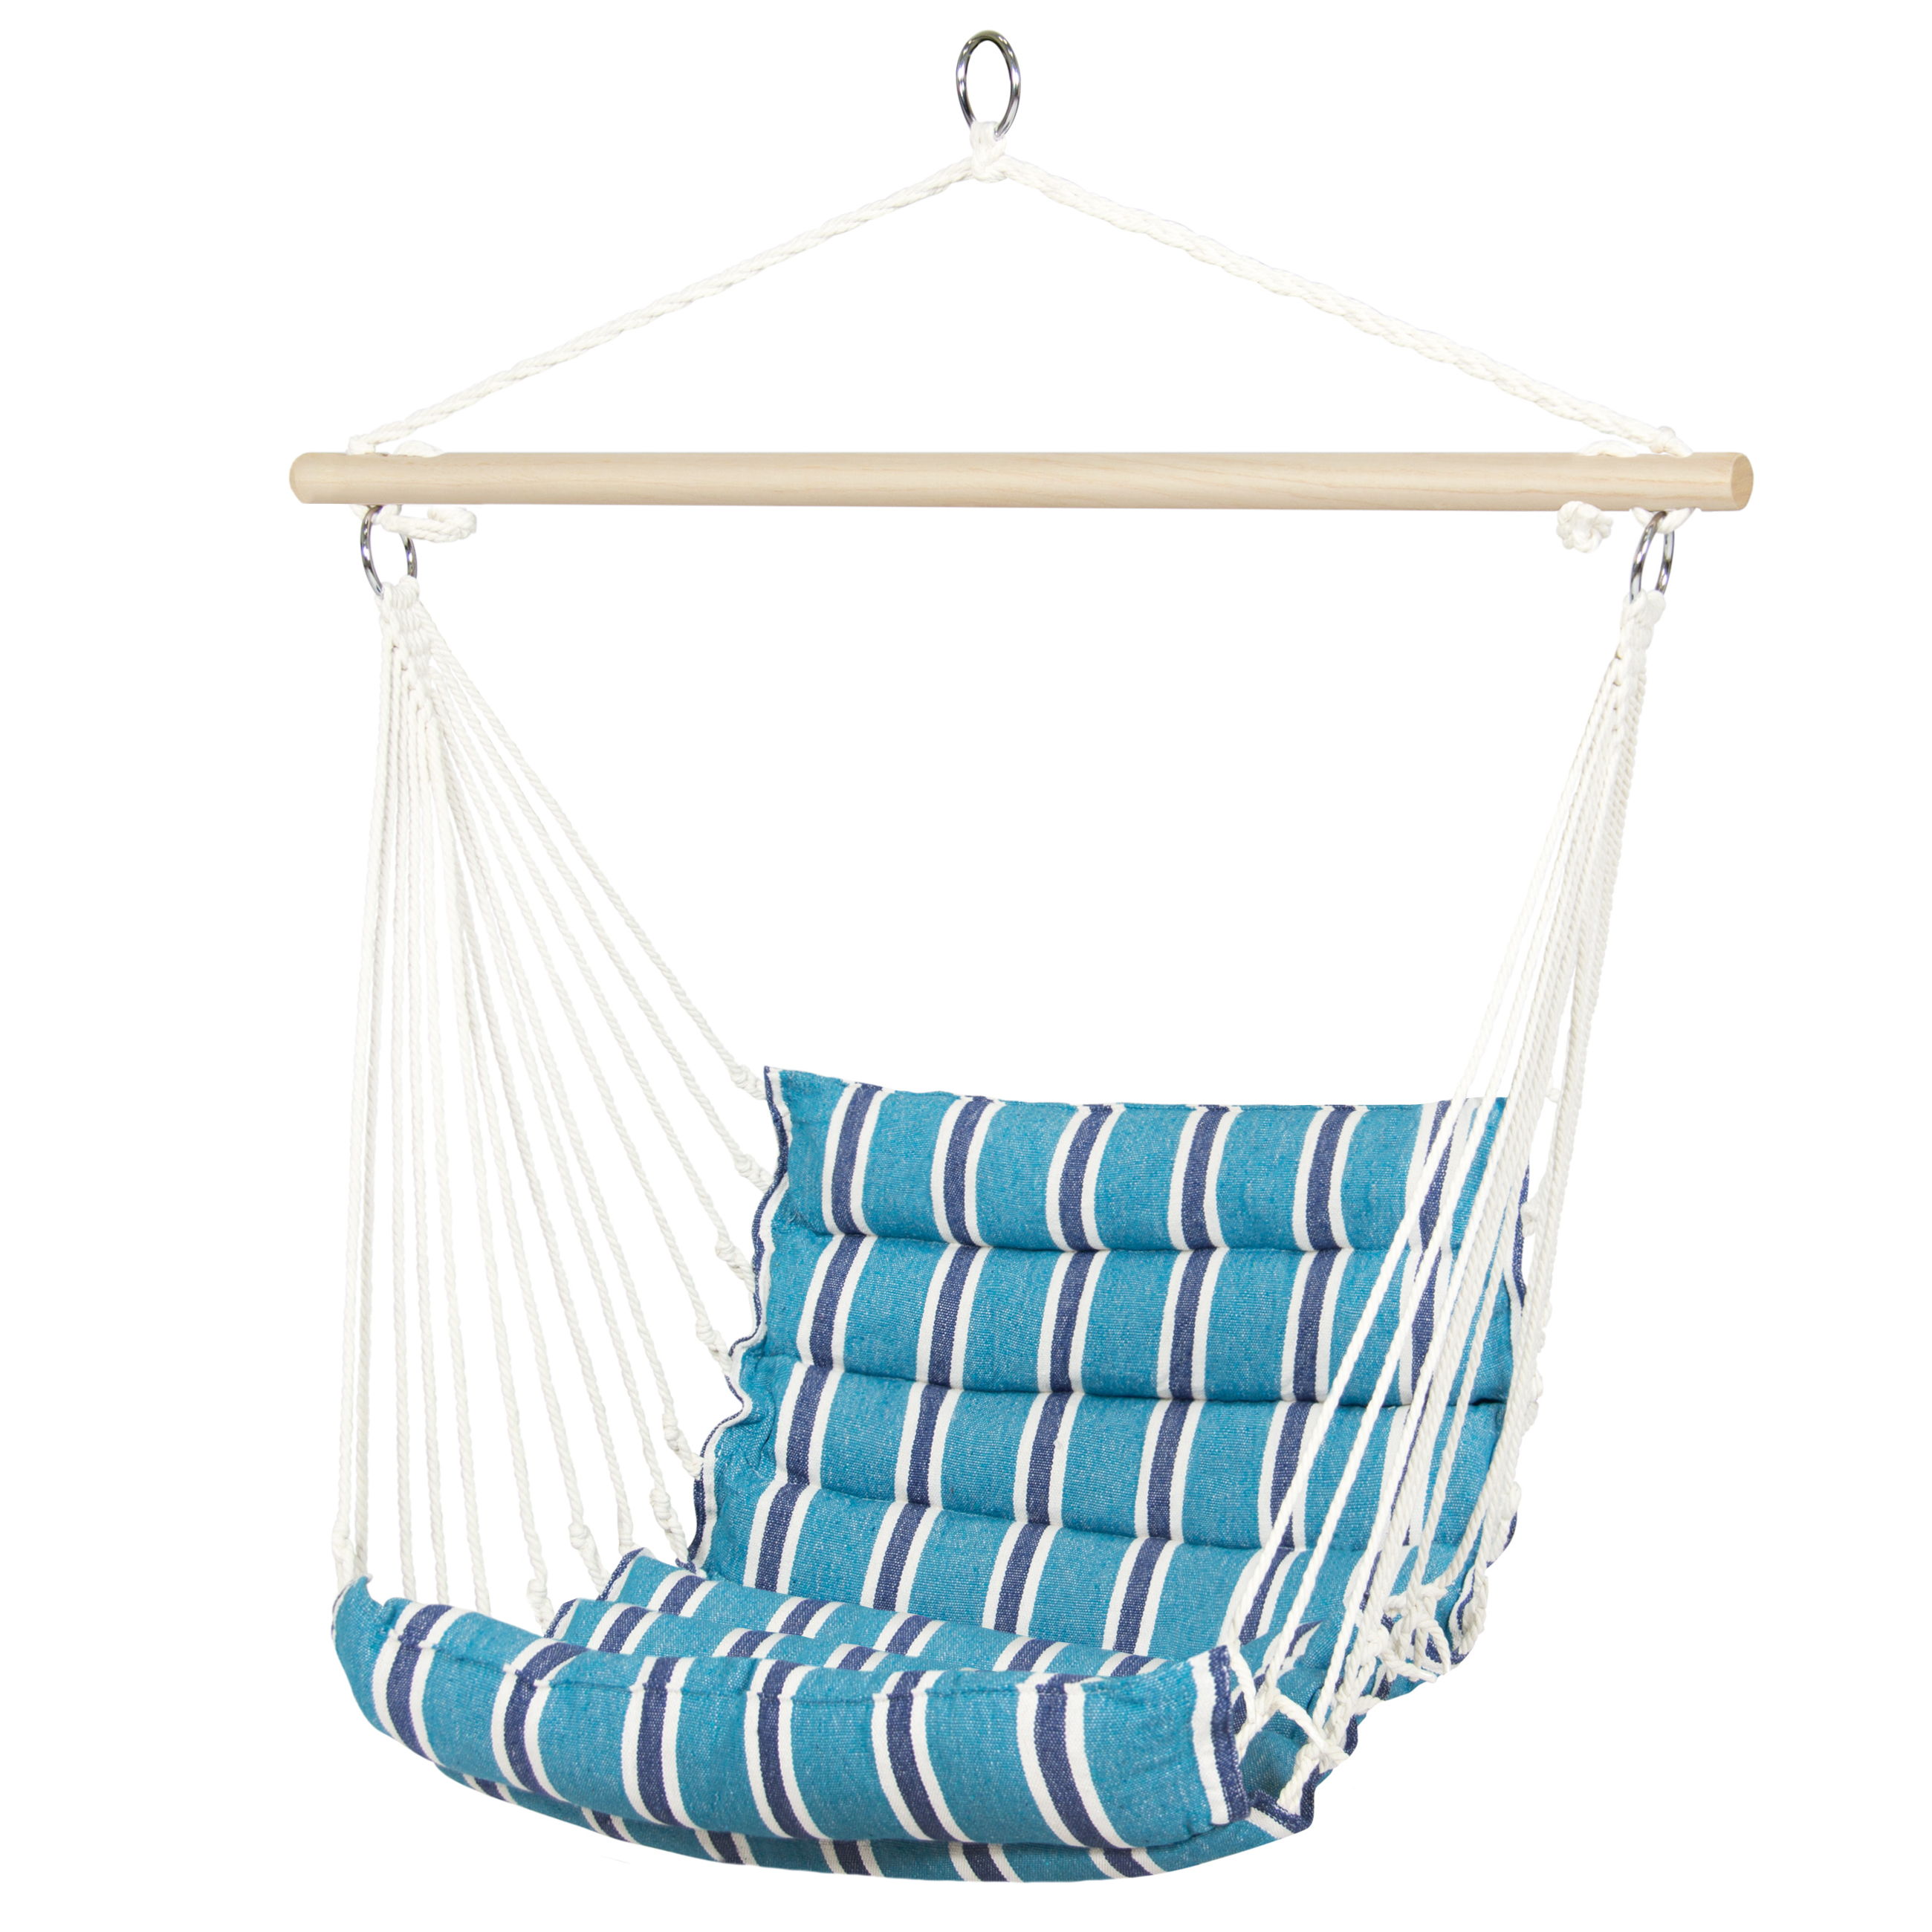 BCP Deluxe Padded Cotton Hammock Hanging Chair Indoor Outdoor Use by Best Choice Products